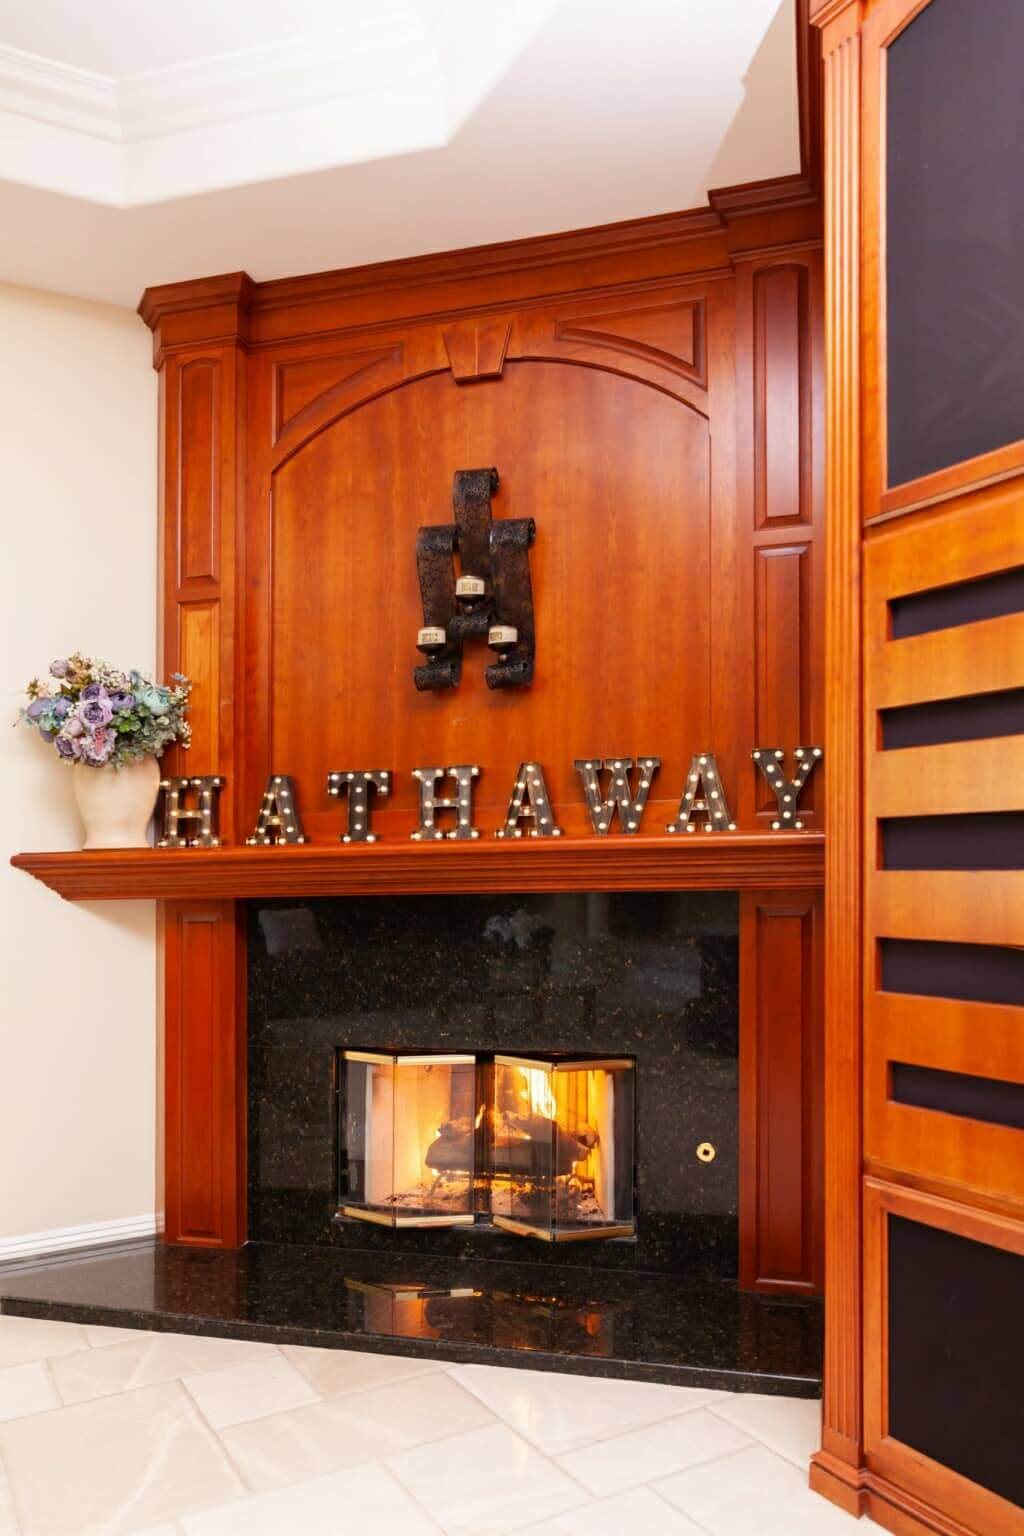 hathaway aftercare services